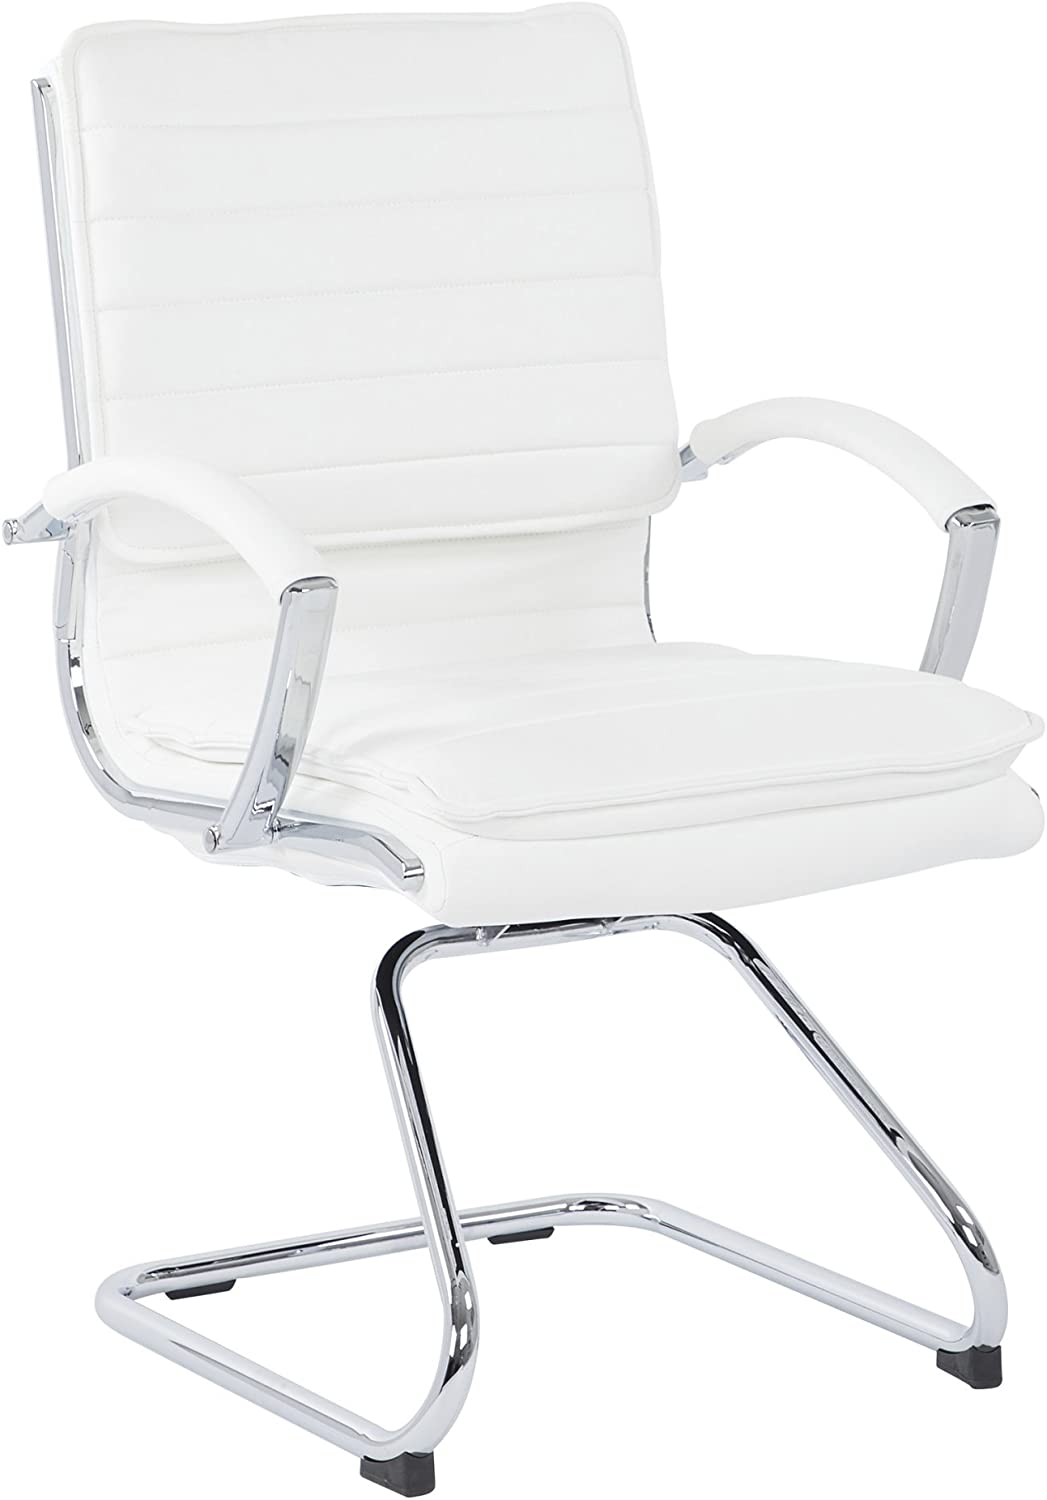 Office Star Faux Leather Guest Chair and Loop Chrome Arms Selling S Japan's largest assortment with